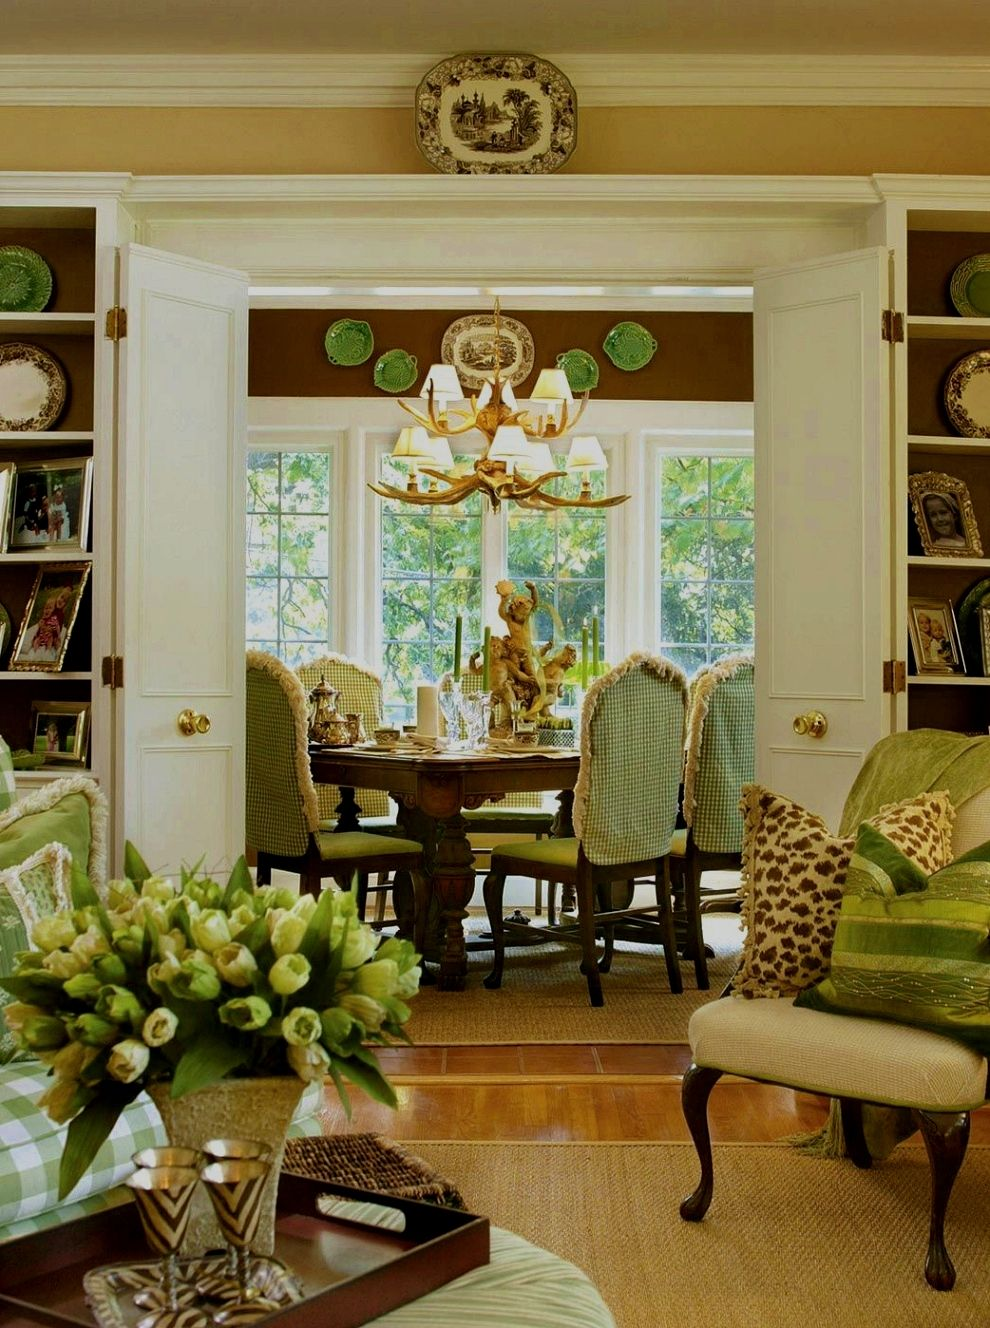 Living Room Remodel Guide Your Drapes And Blinds Should Match The Rooms Overall Look